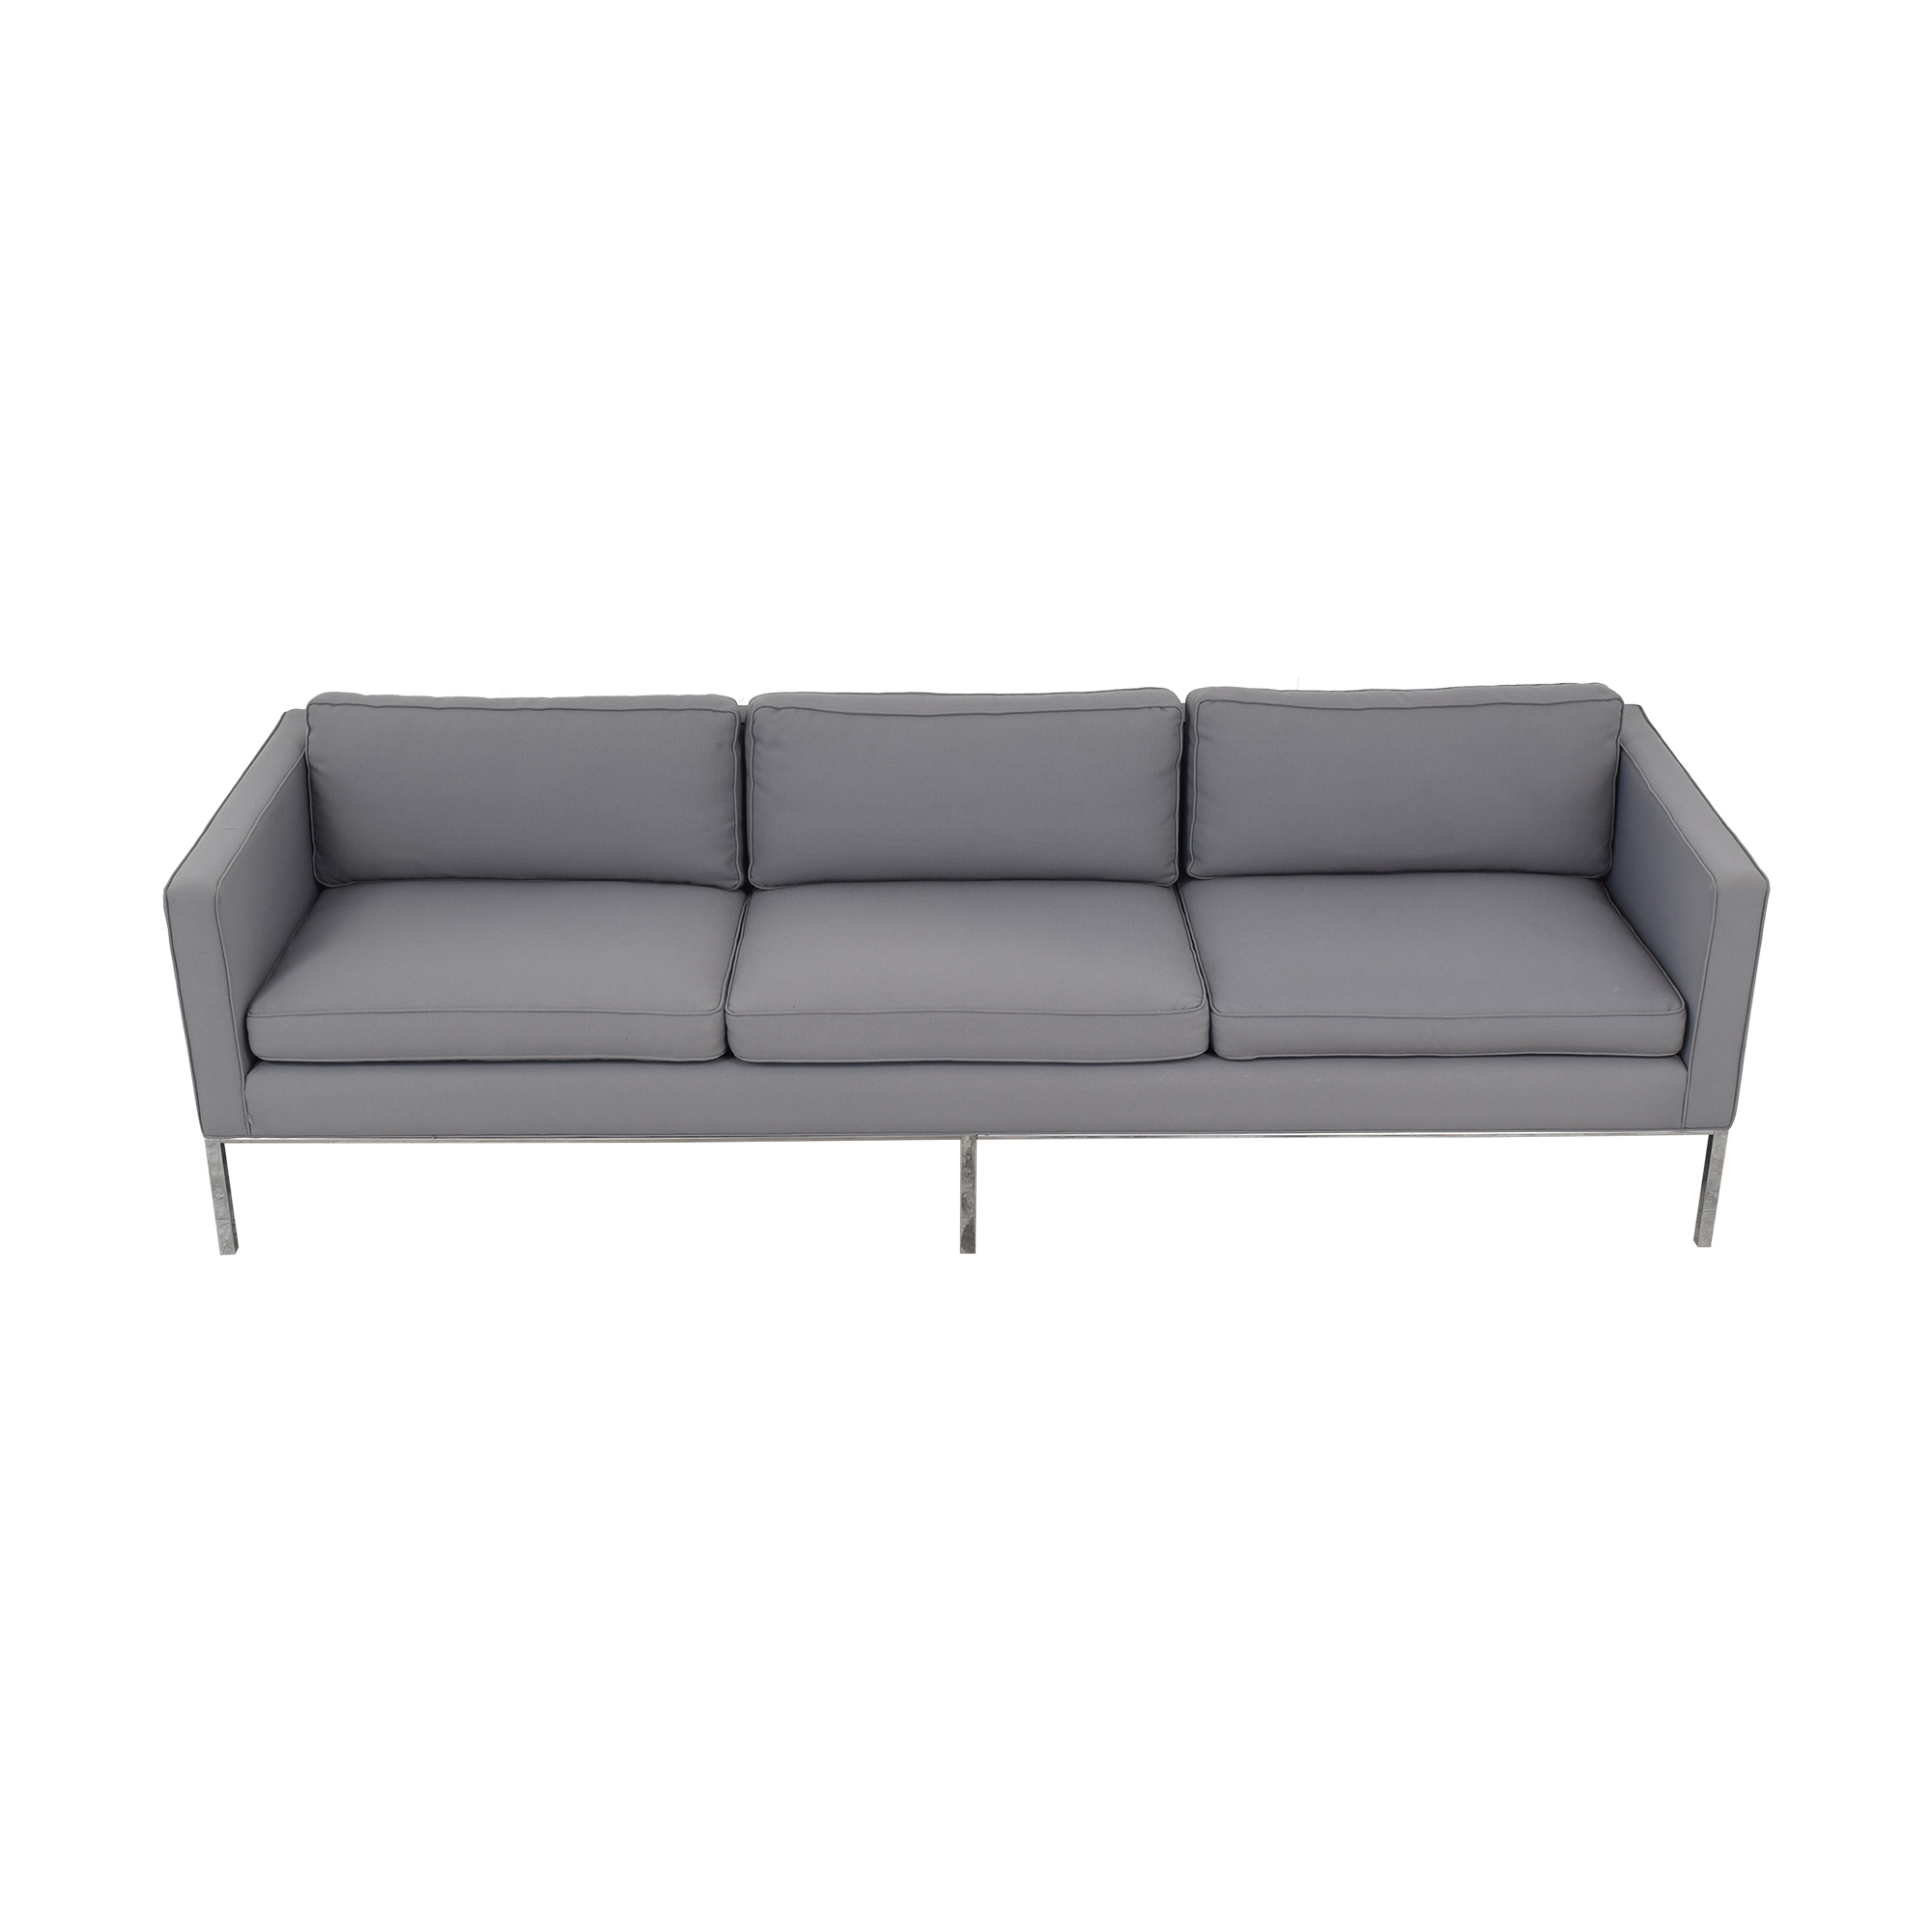 Artifort Artifort 905 3 Seater Sofa with 905 Ottoman nyc